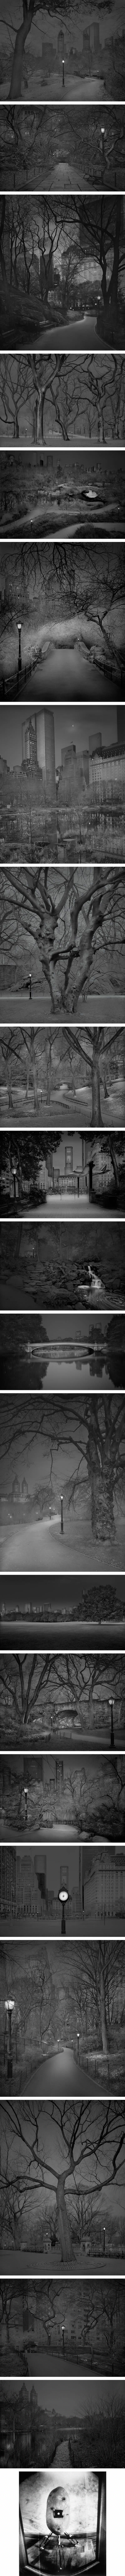 Insomniac Photographer Captures Haunting Images Of Central Park At Dusk